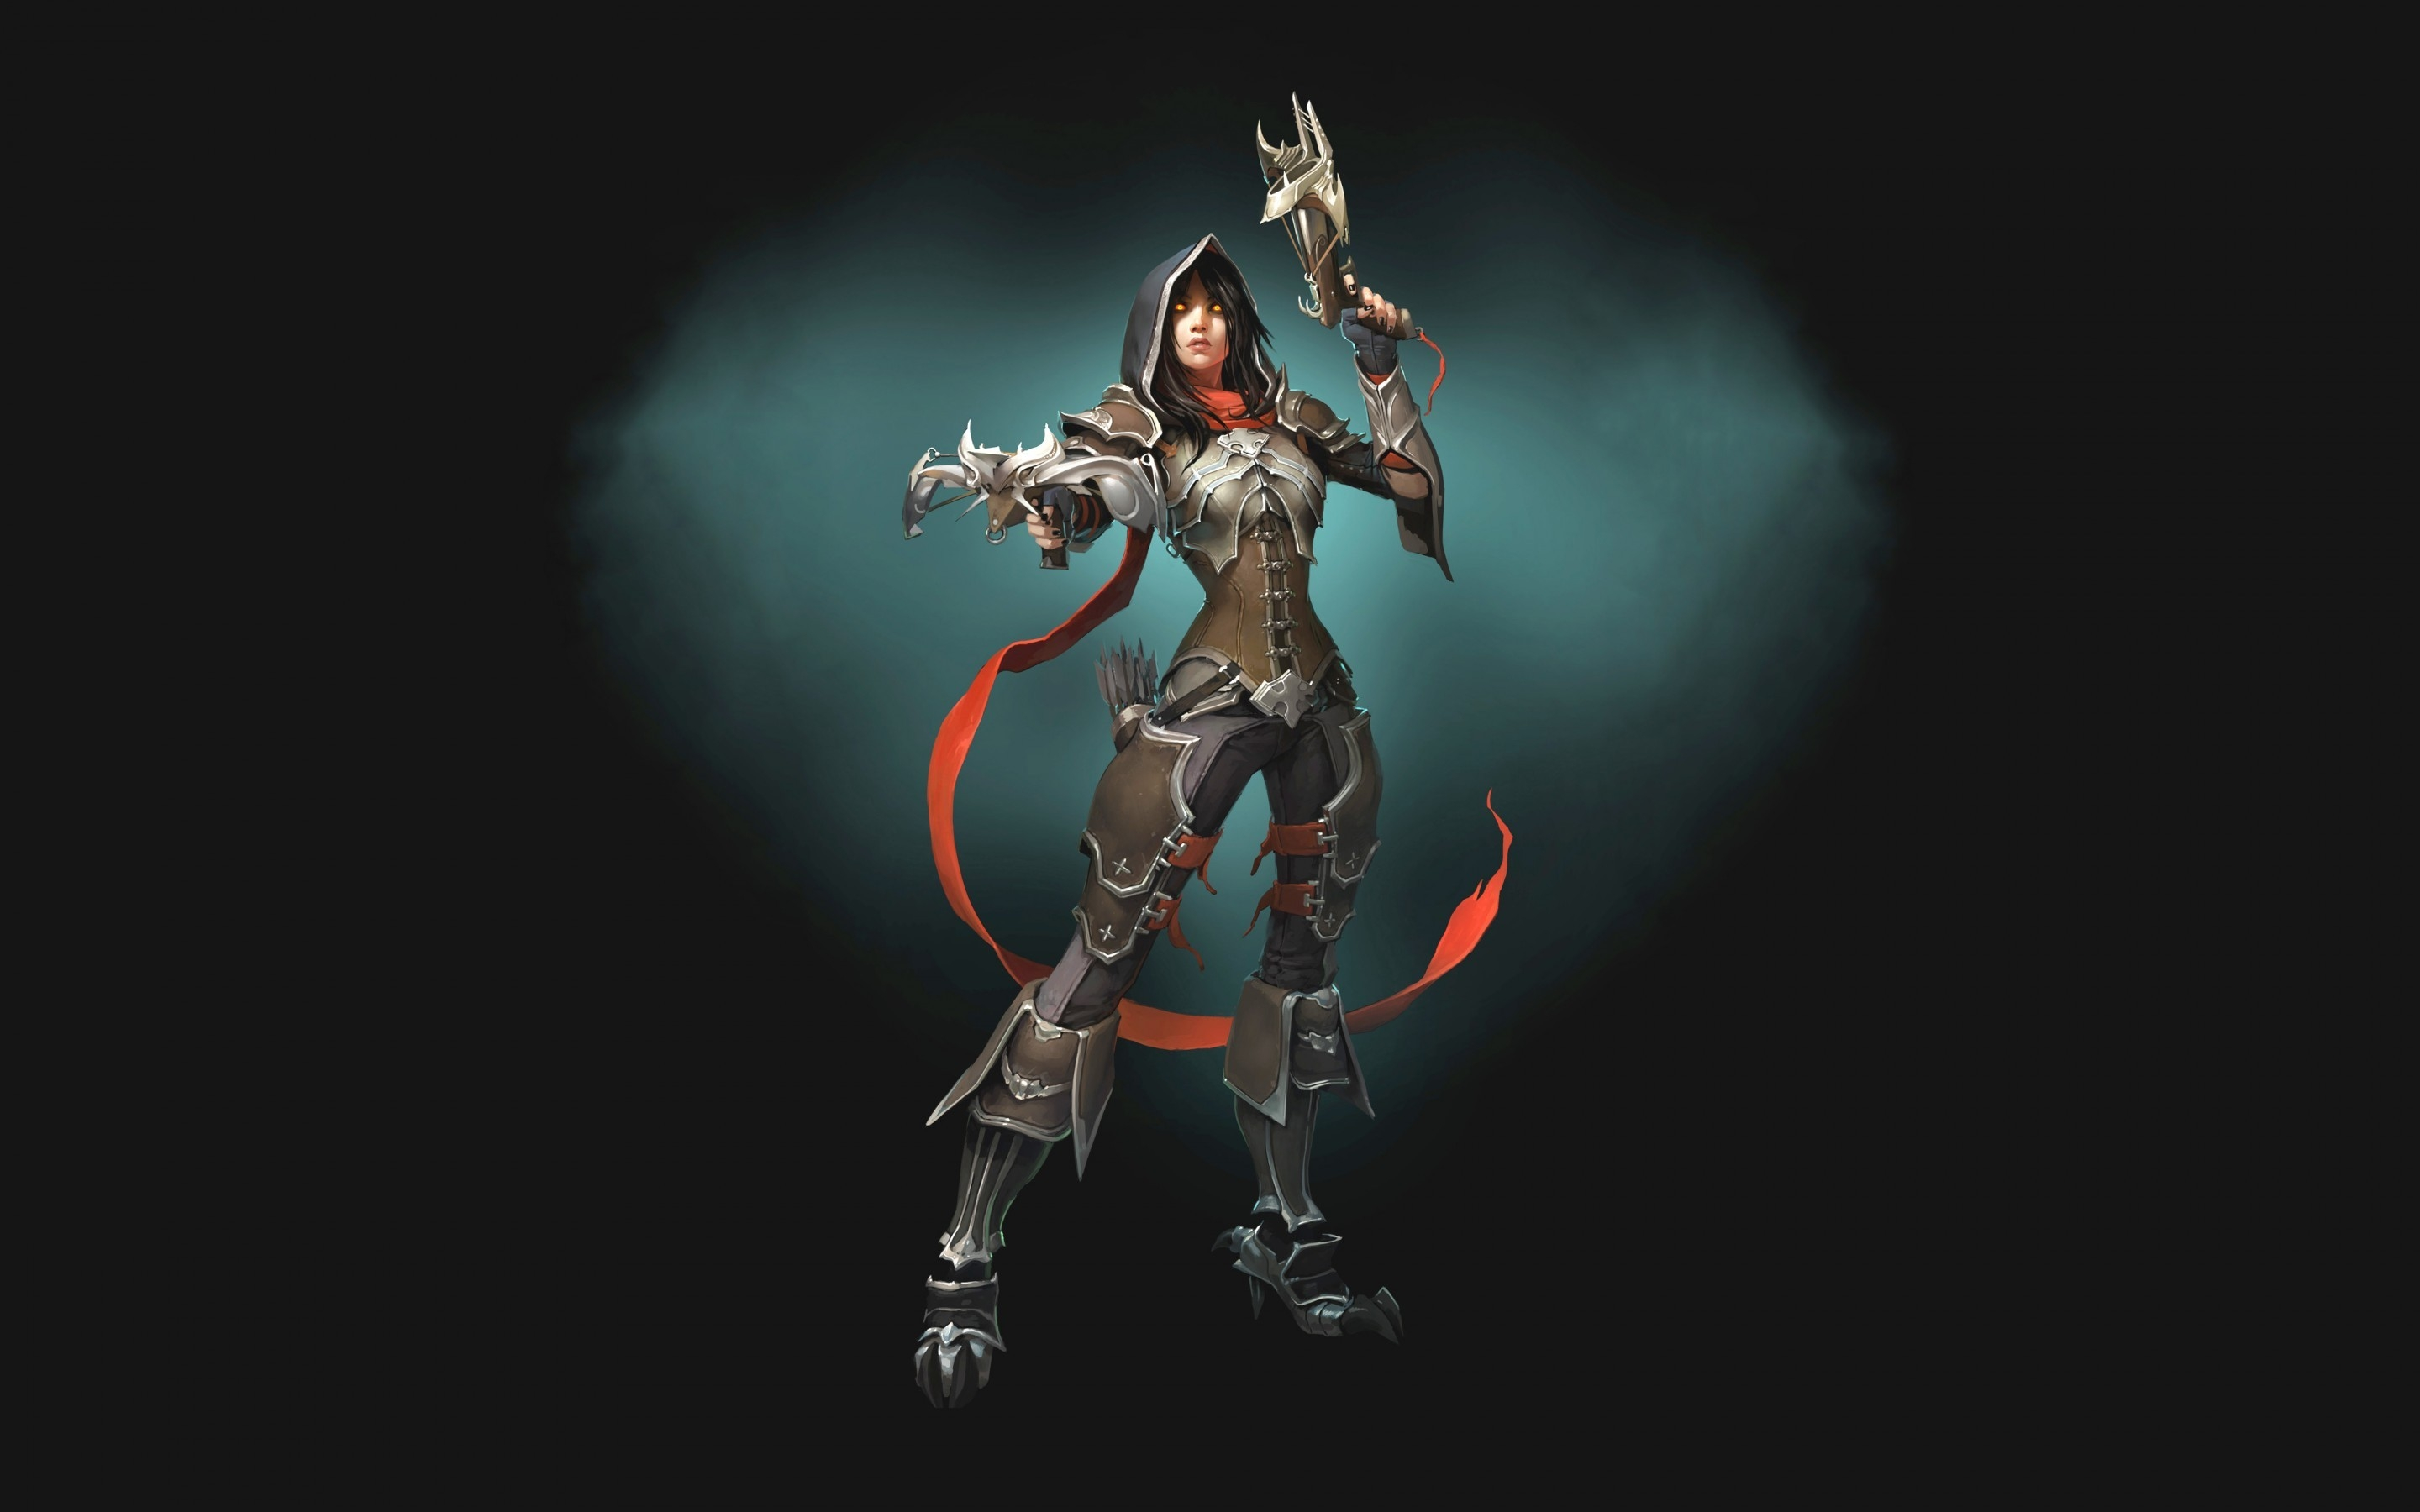 Demon Hunter Diablo 3 Hd Wallpaper Wallpaperfx